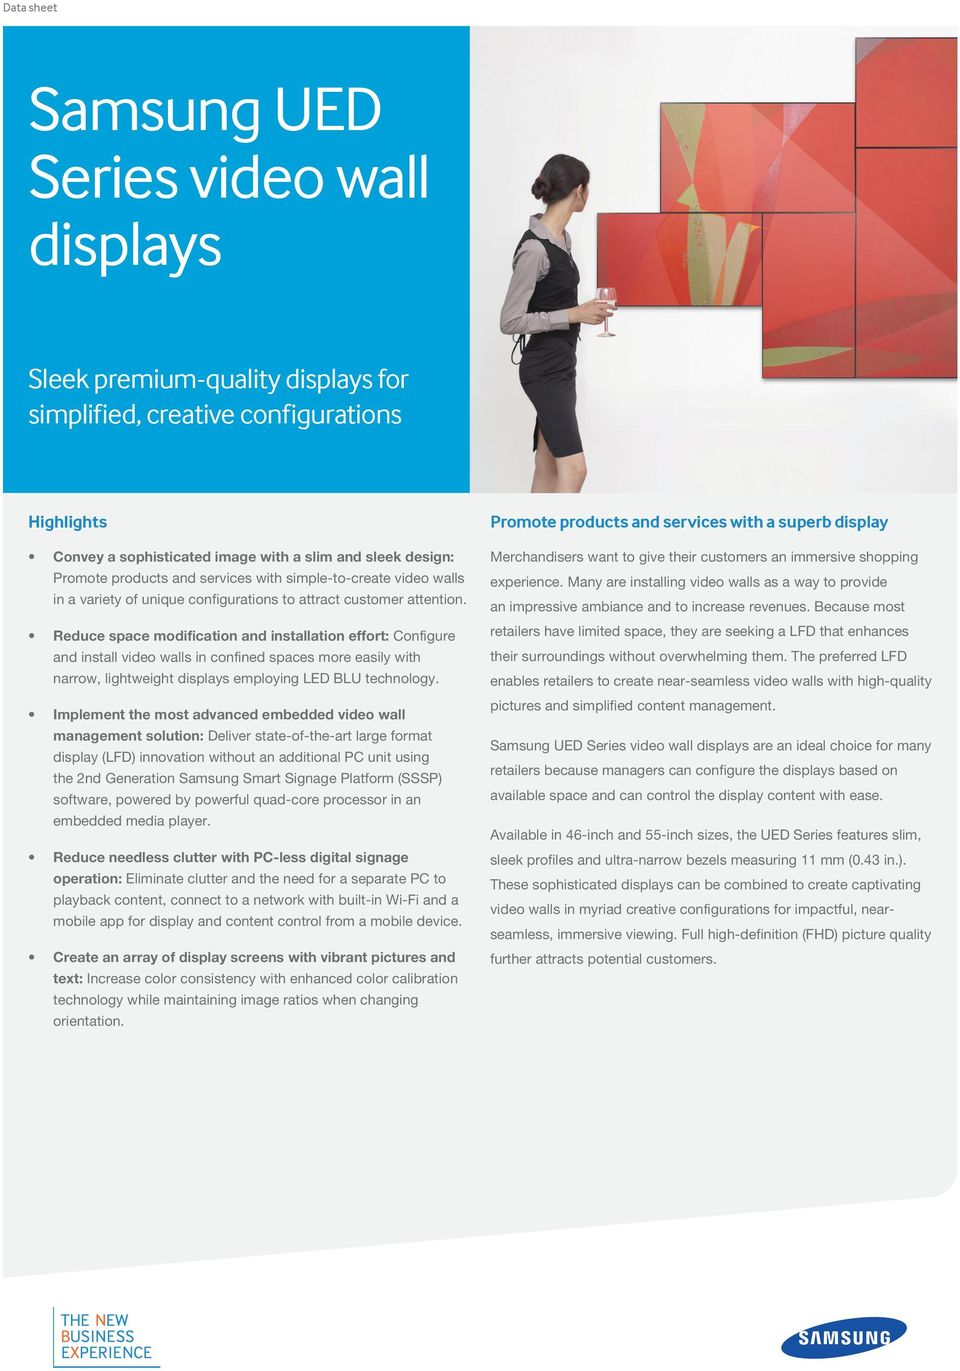 Reduce space modification and installation effort: Configure and install video walls in confined spaces more easily with narrow, lightweight displays employing LED BLU technology.